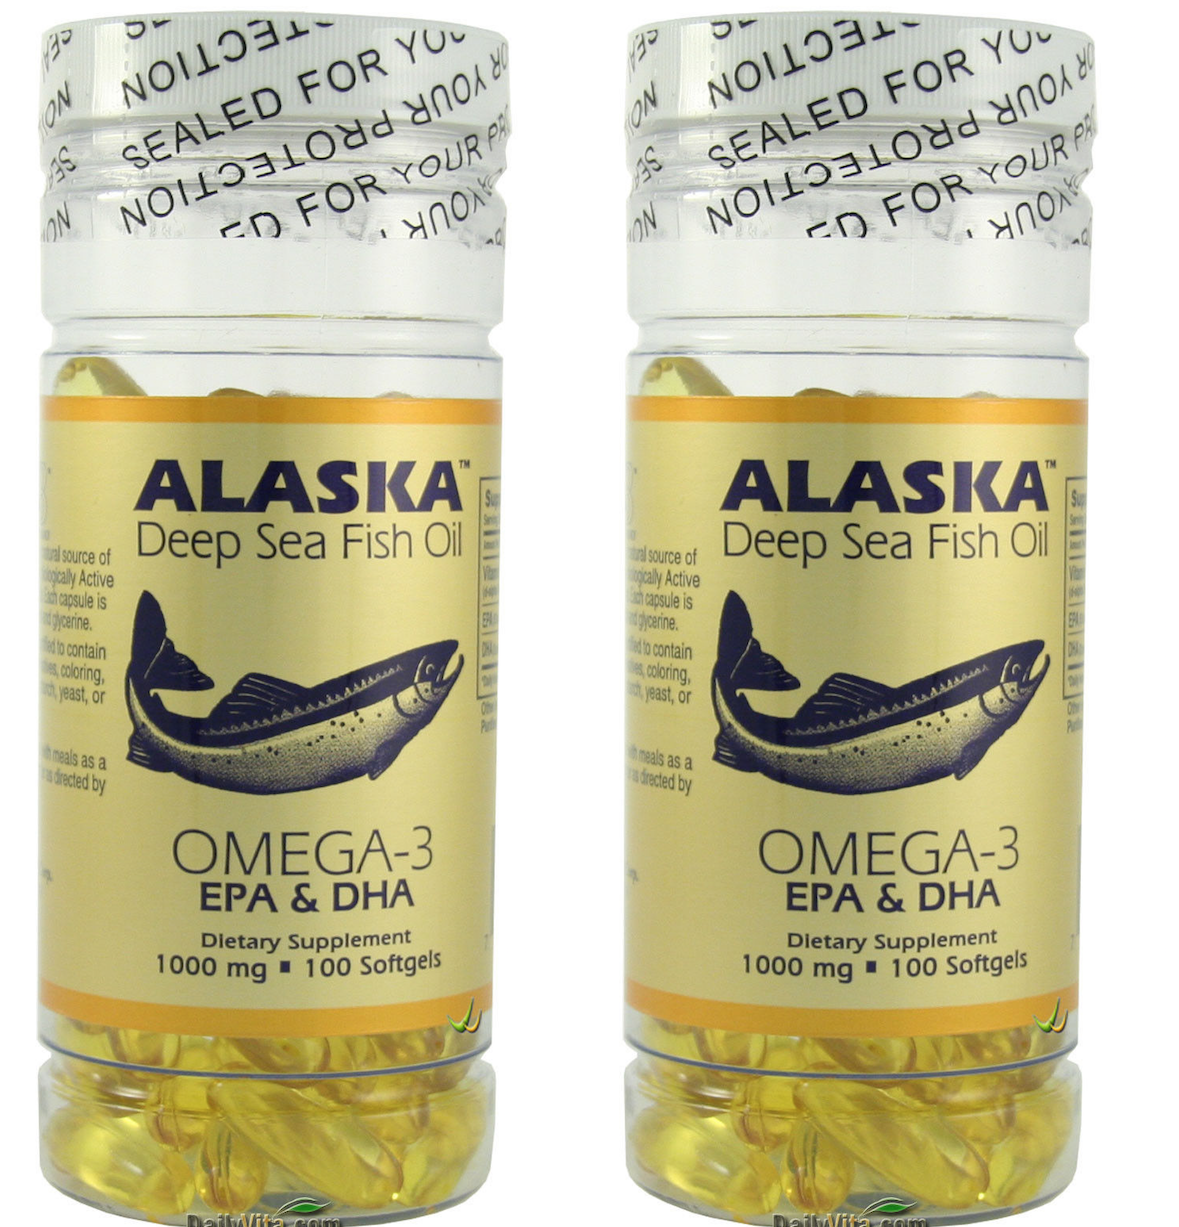 Alaska Deep Sea Fish Oil, Omega 3, DHA/EPA 1000 mg 200 Softg